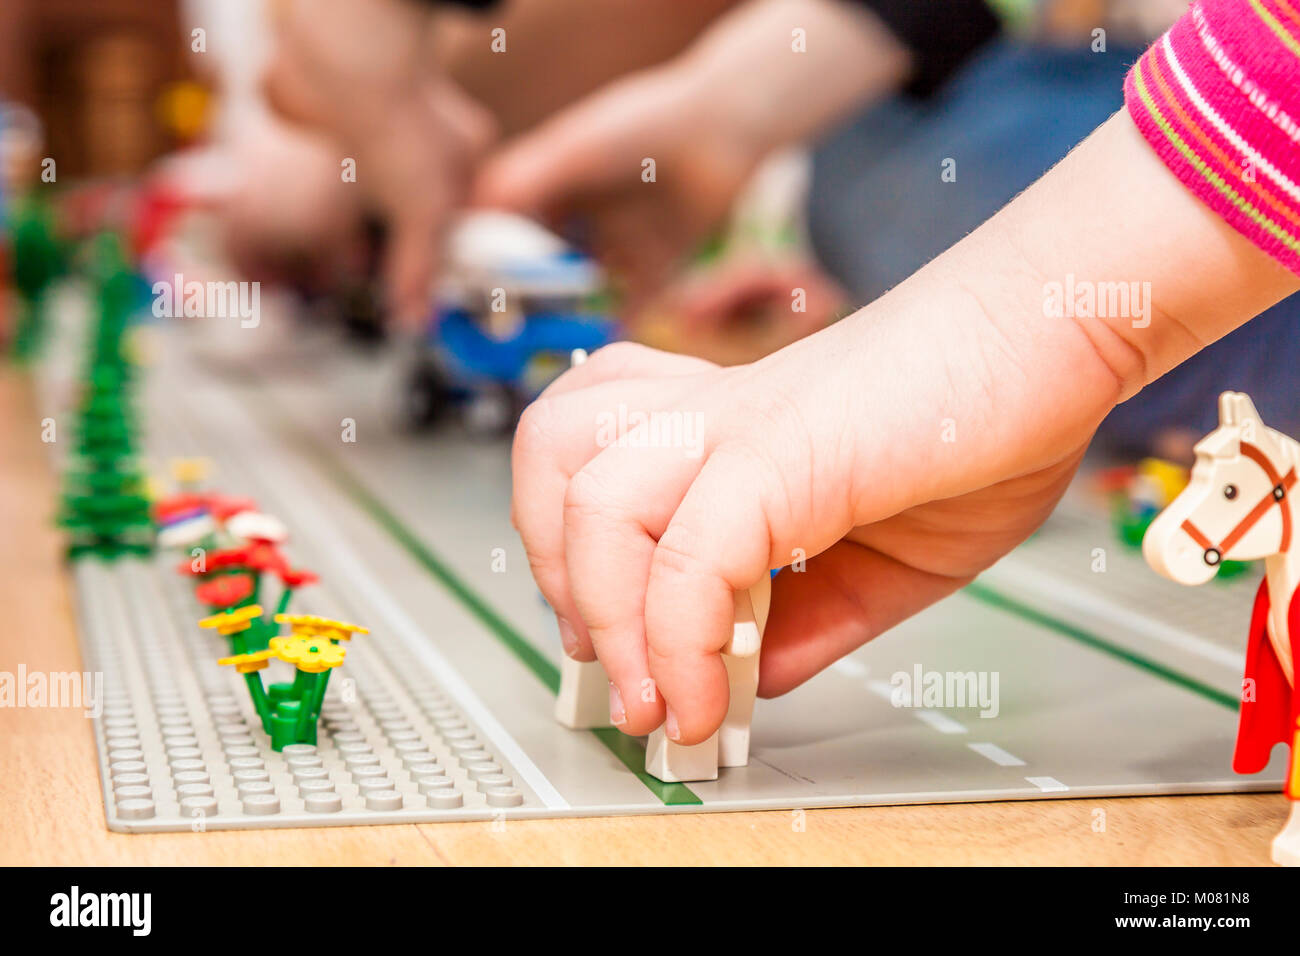 Preschooler girl playing with colorful toy blocks and bricks - Stock Image